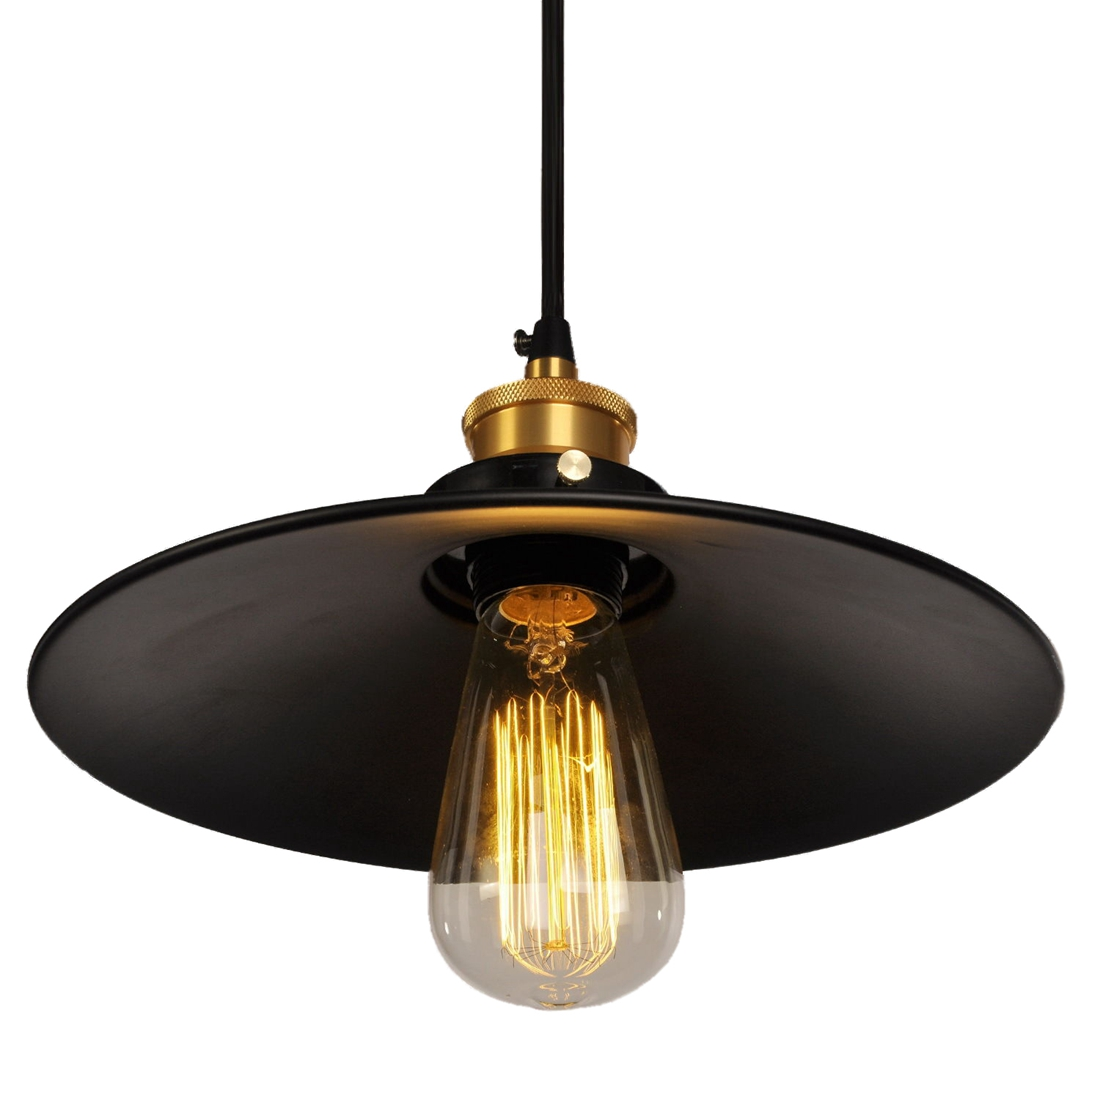 Garage Metal Ceiling Light Retro Chandelier Pendant